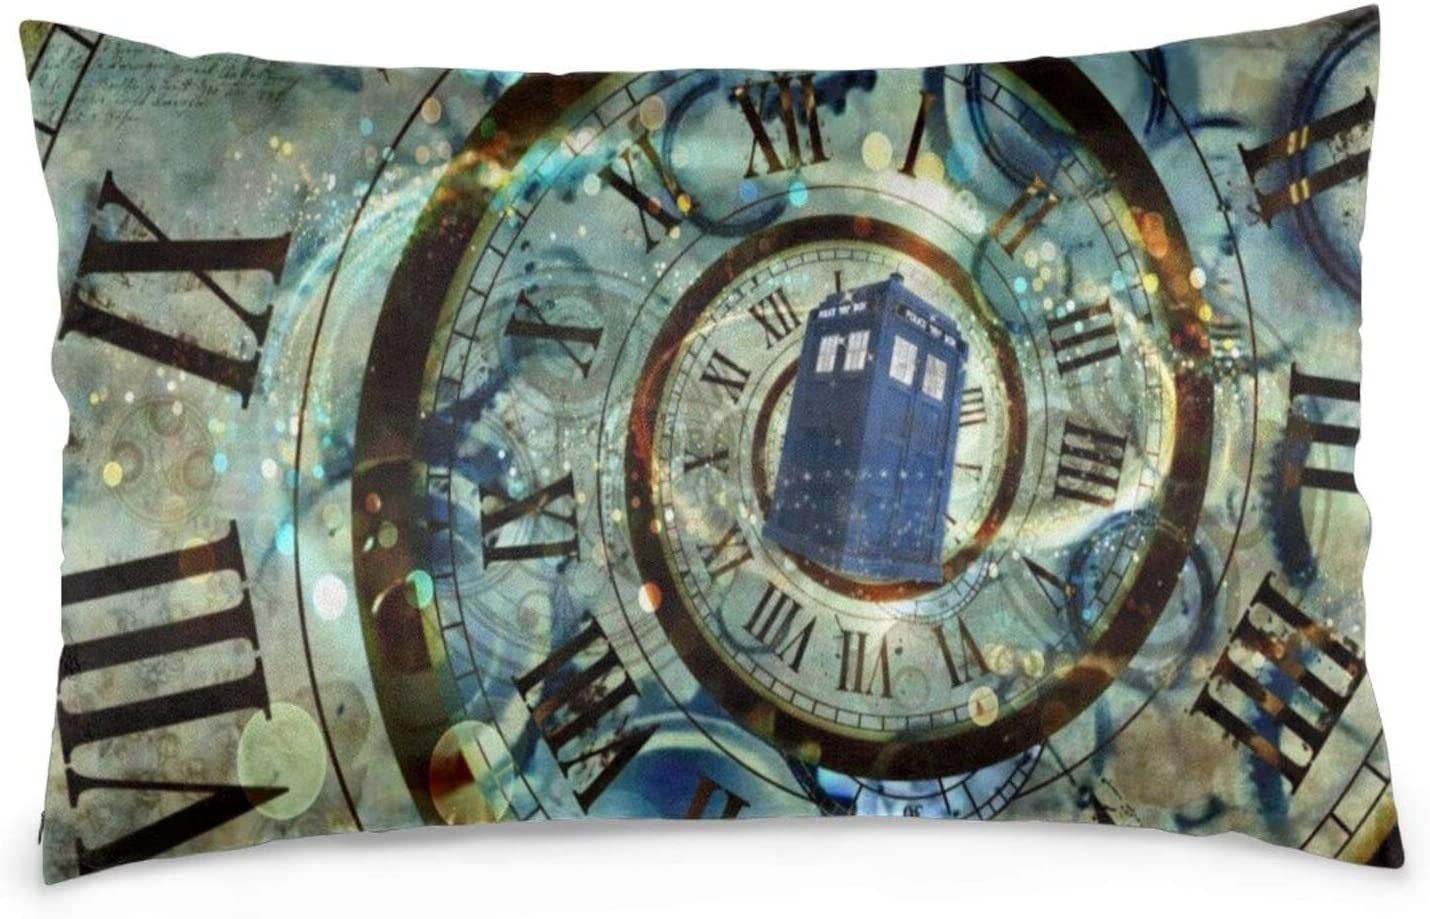 BAIFUMEN Doctor Dr Who Police Girls Boys Pillowcases Pillows Covers Cases Bedroom Decor Decoration Rectangle Two Sides Printed 20x30 Inch Hotel,Cafe,Car,Sofa Throw Pillow Case Cushion Cover